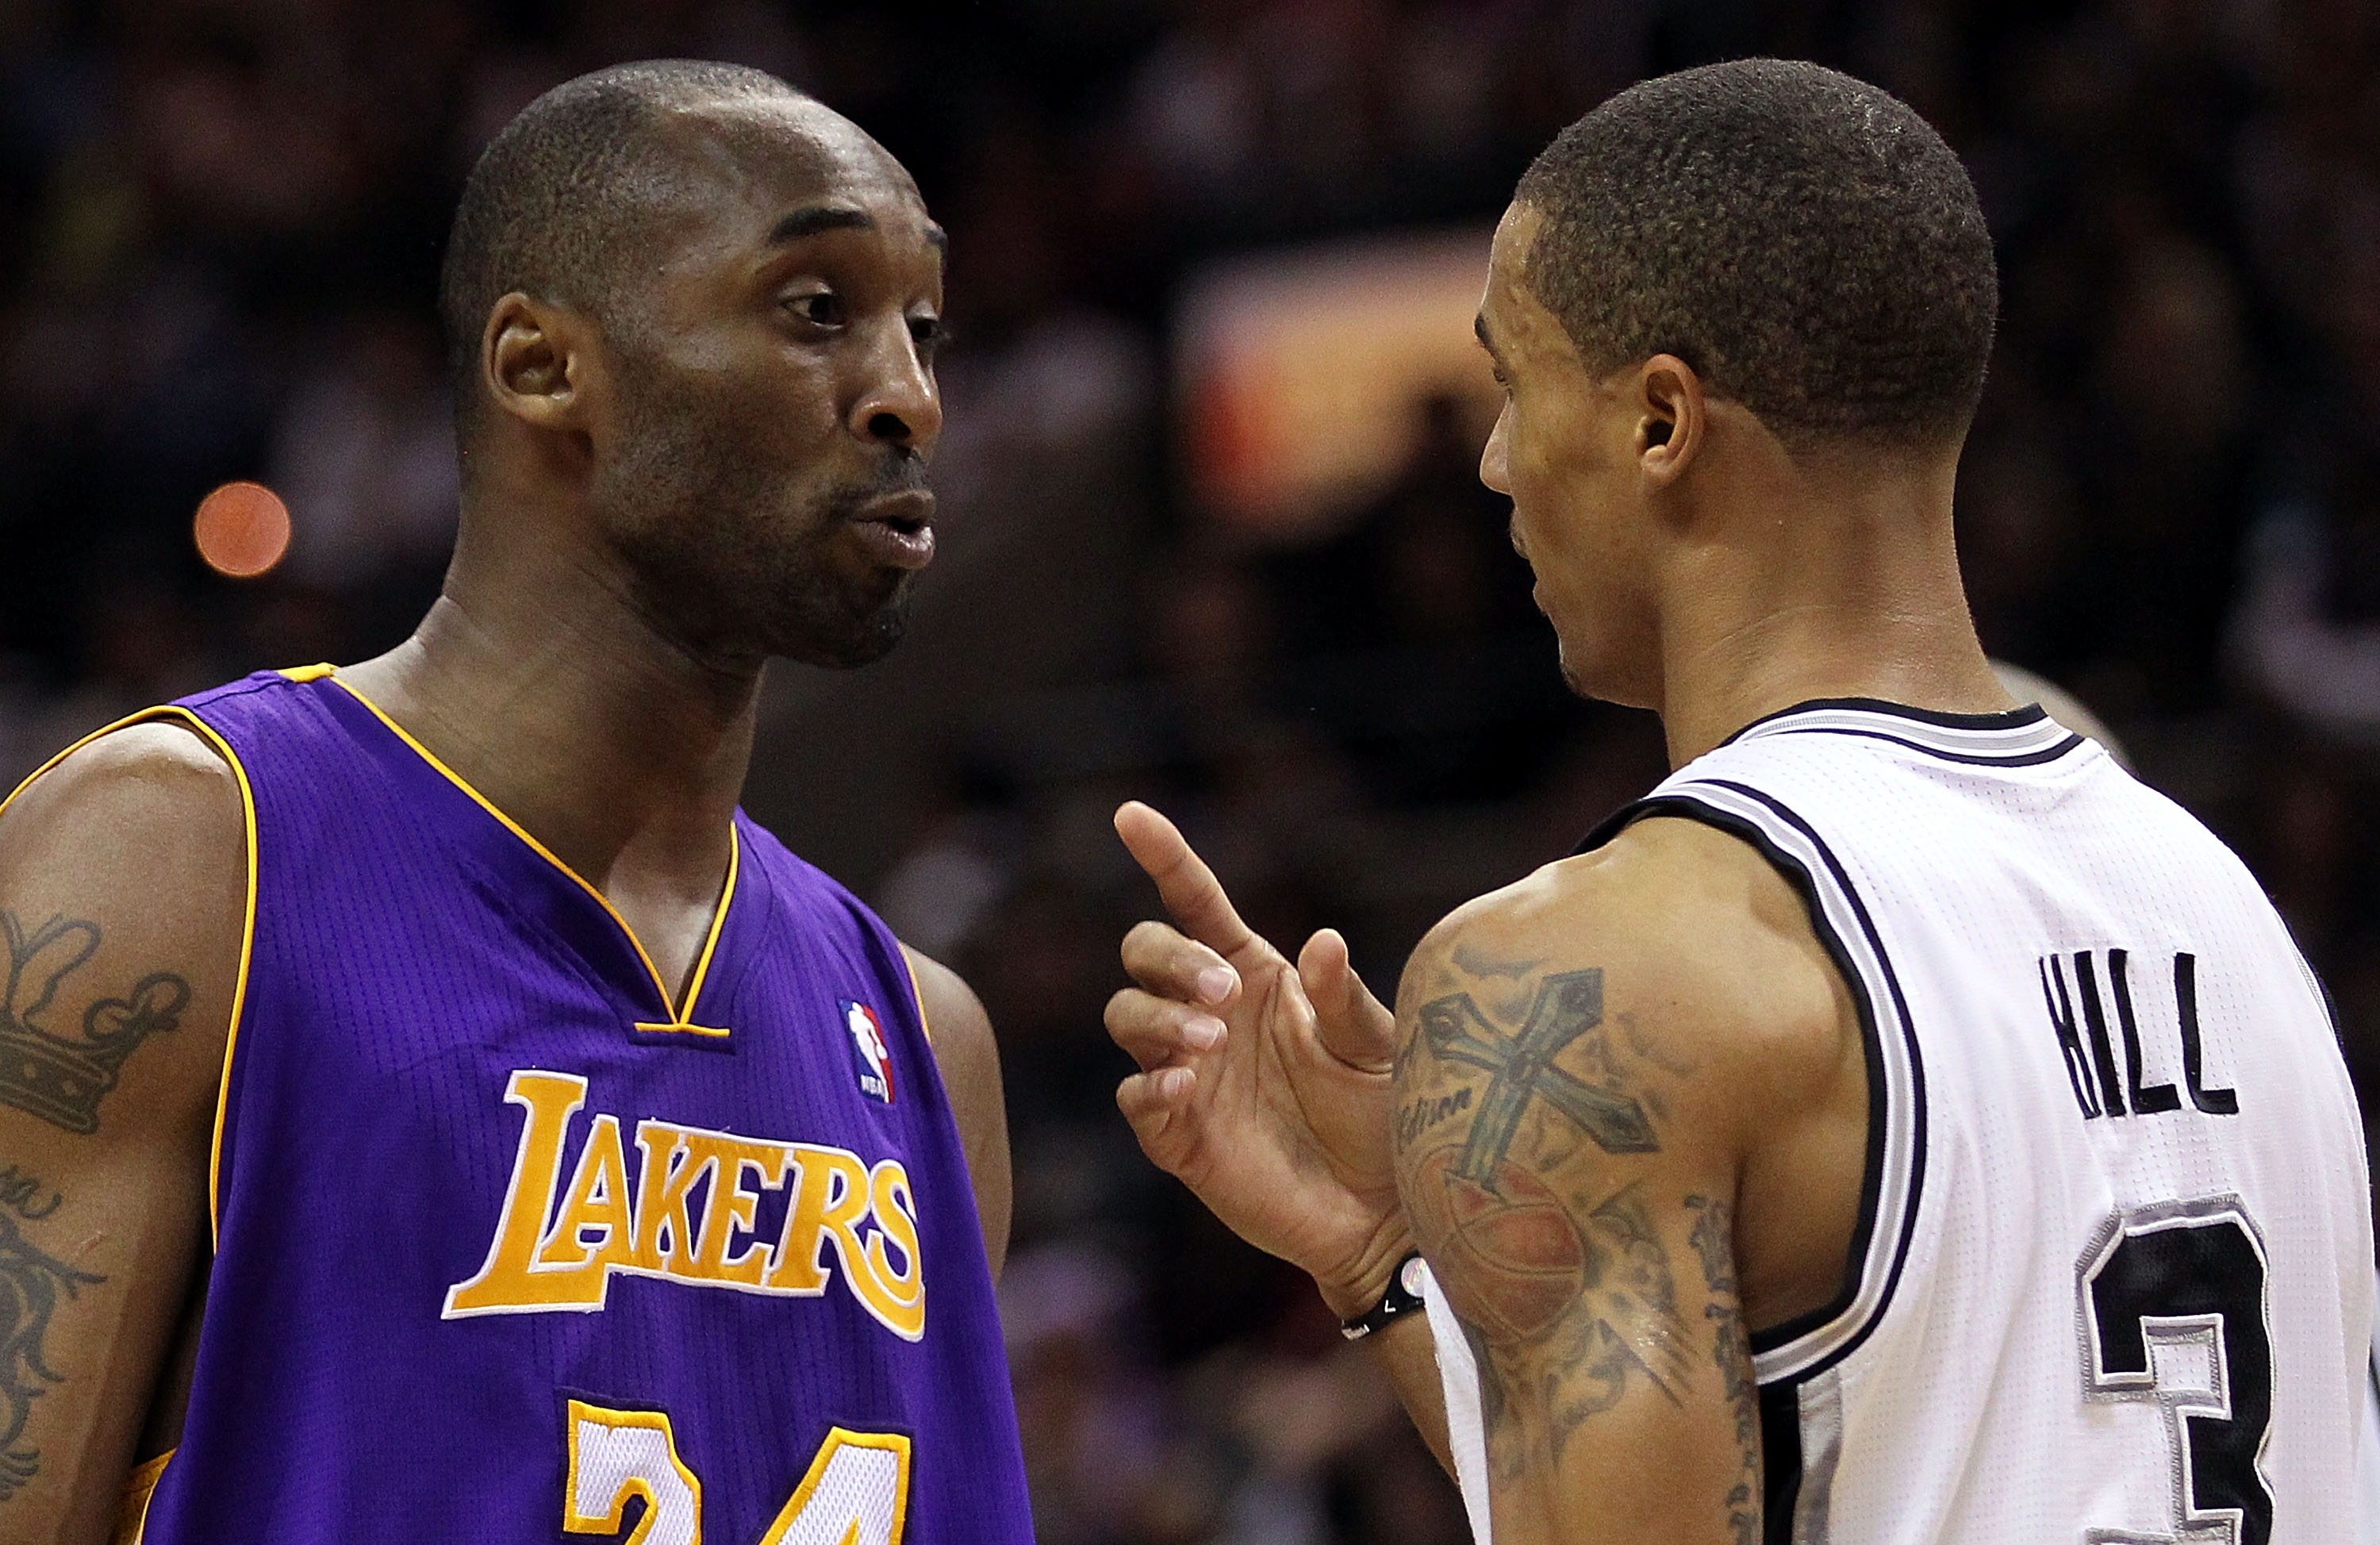 SAN ANTONIO, TX - DECEMBER 28:  Guard Kobe Bryant #24 of the Los Angeles Lakers and George Hill #3 of the San Antonio Spurs confront one another in the second quarter at AT&T Center on December 28, 2010 in San Antonio, Texas.  NOTE TO USER: User expressly